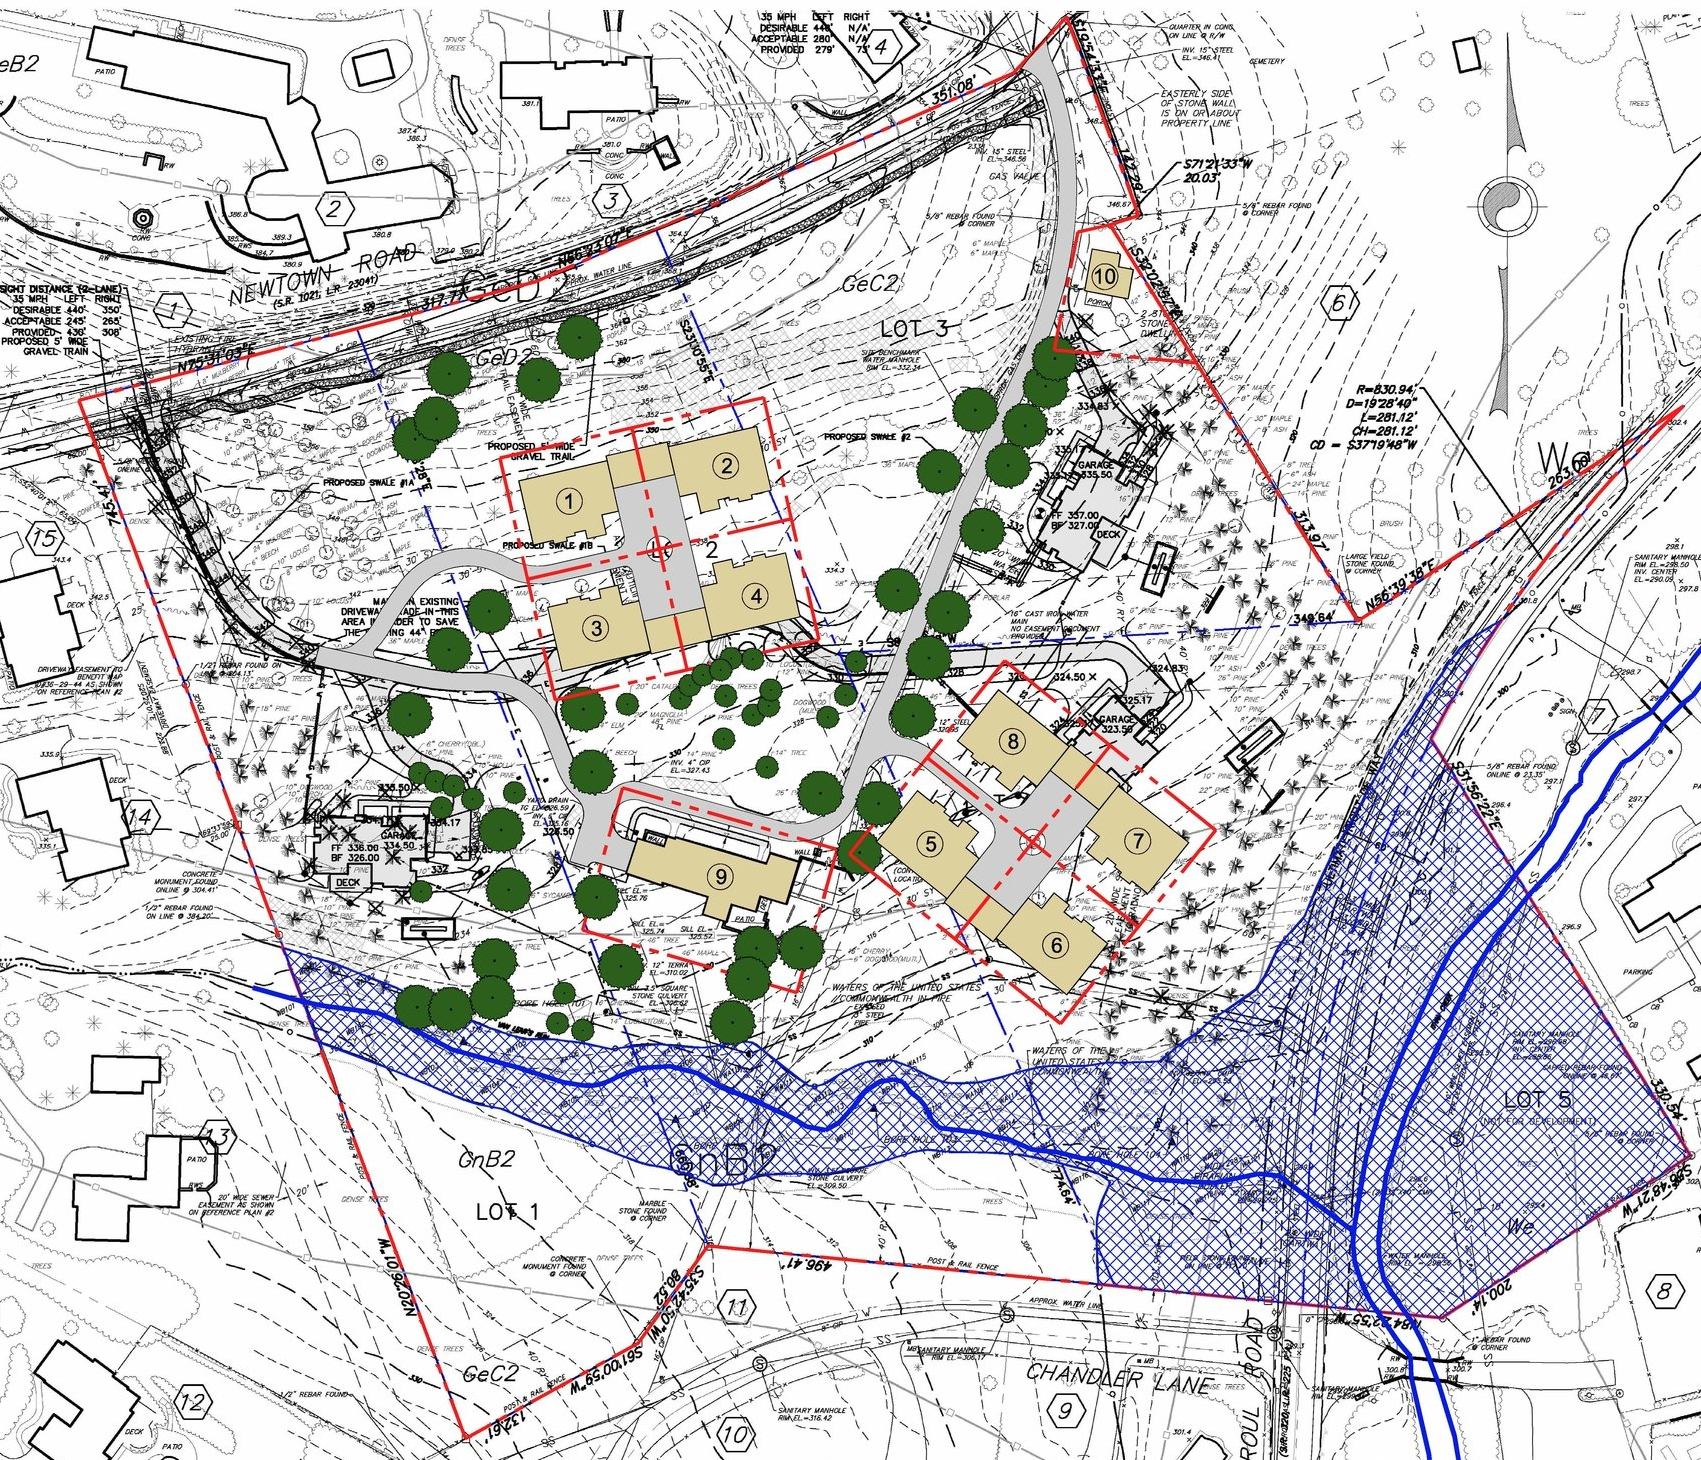 REV#1_3-19-12_Cluster_Development_Sketch_Plan_SK-1_30x42.jpg